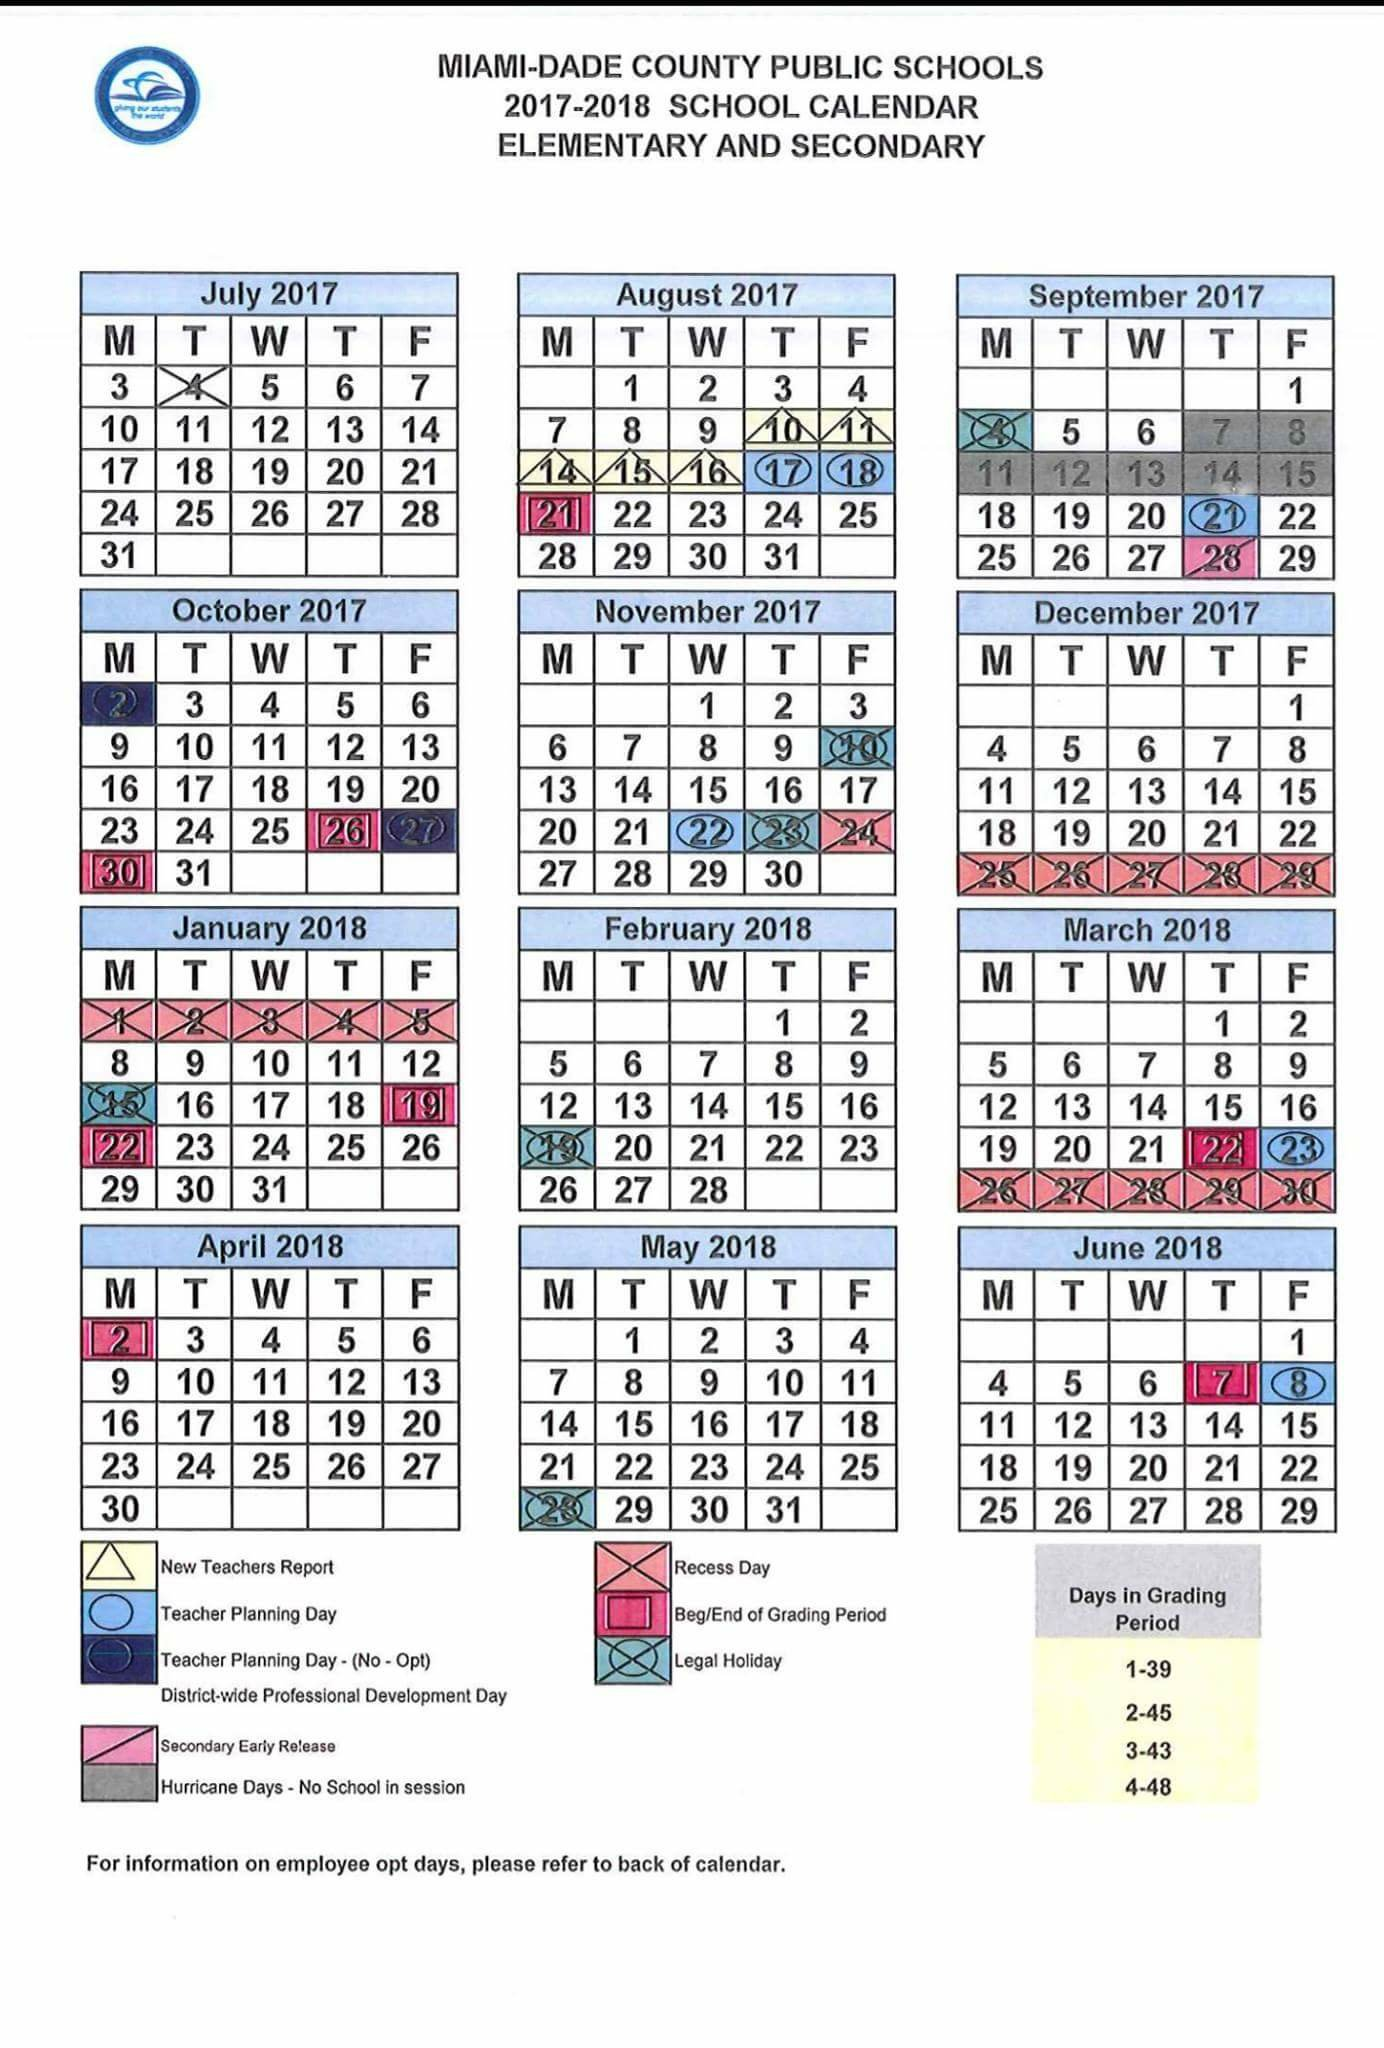 Revised 2017 18 School Calendar Dr Dorothy Bendross Mindingall